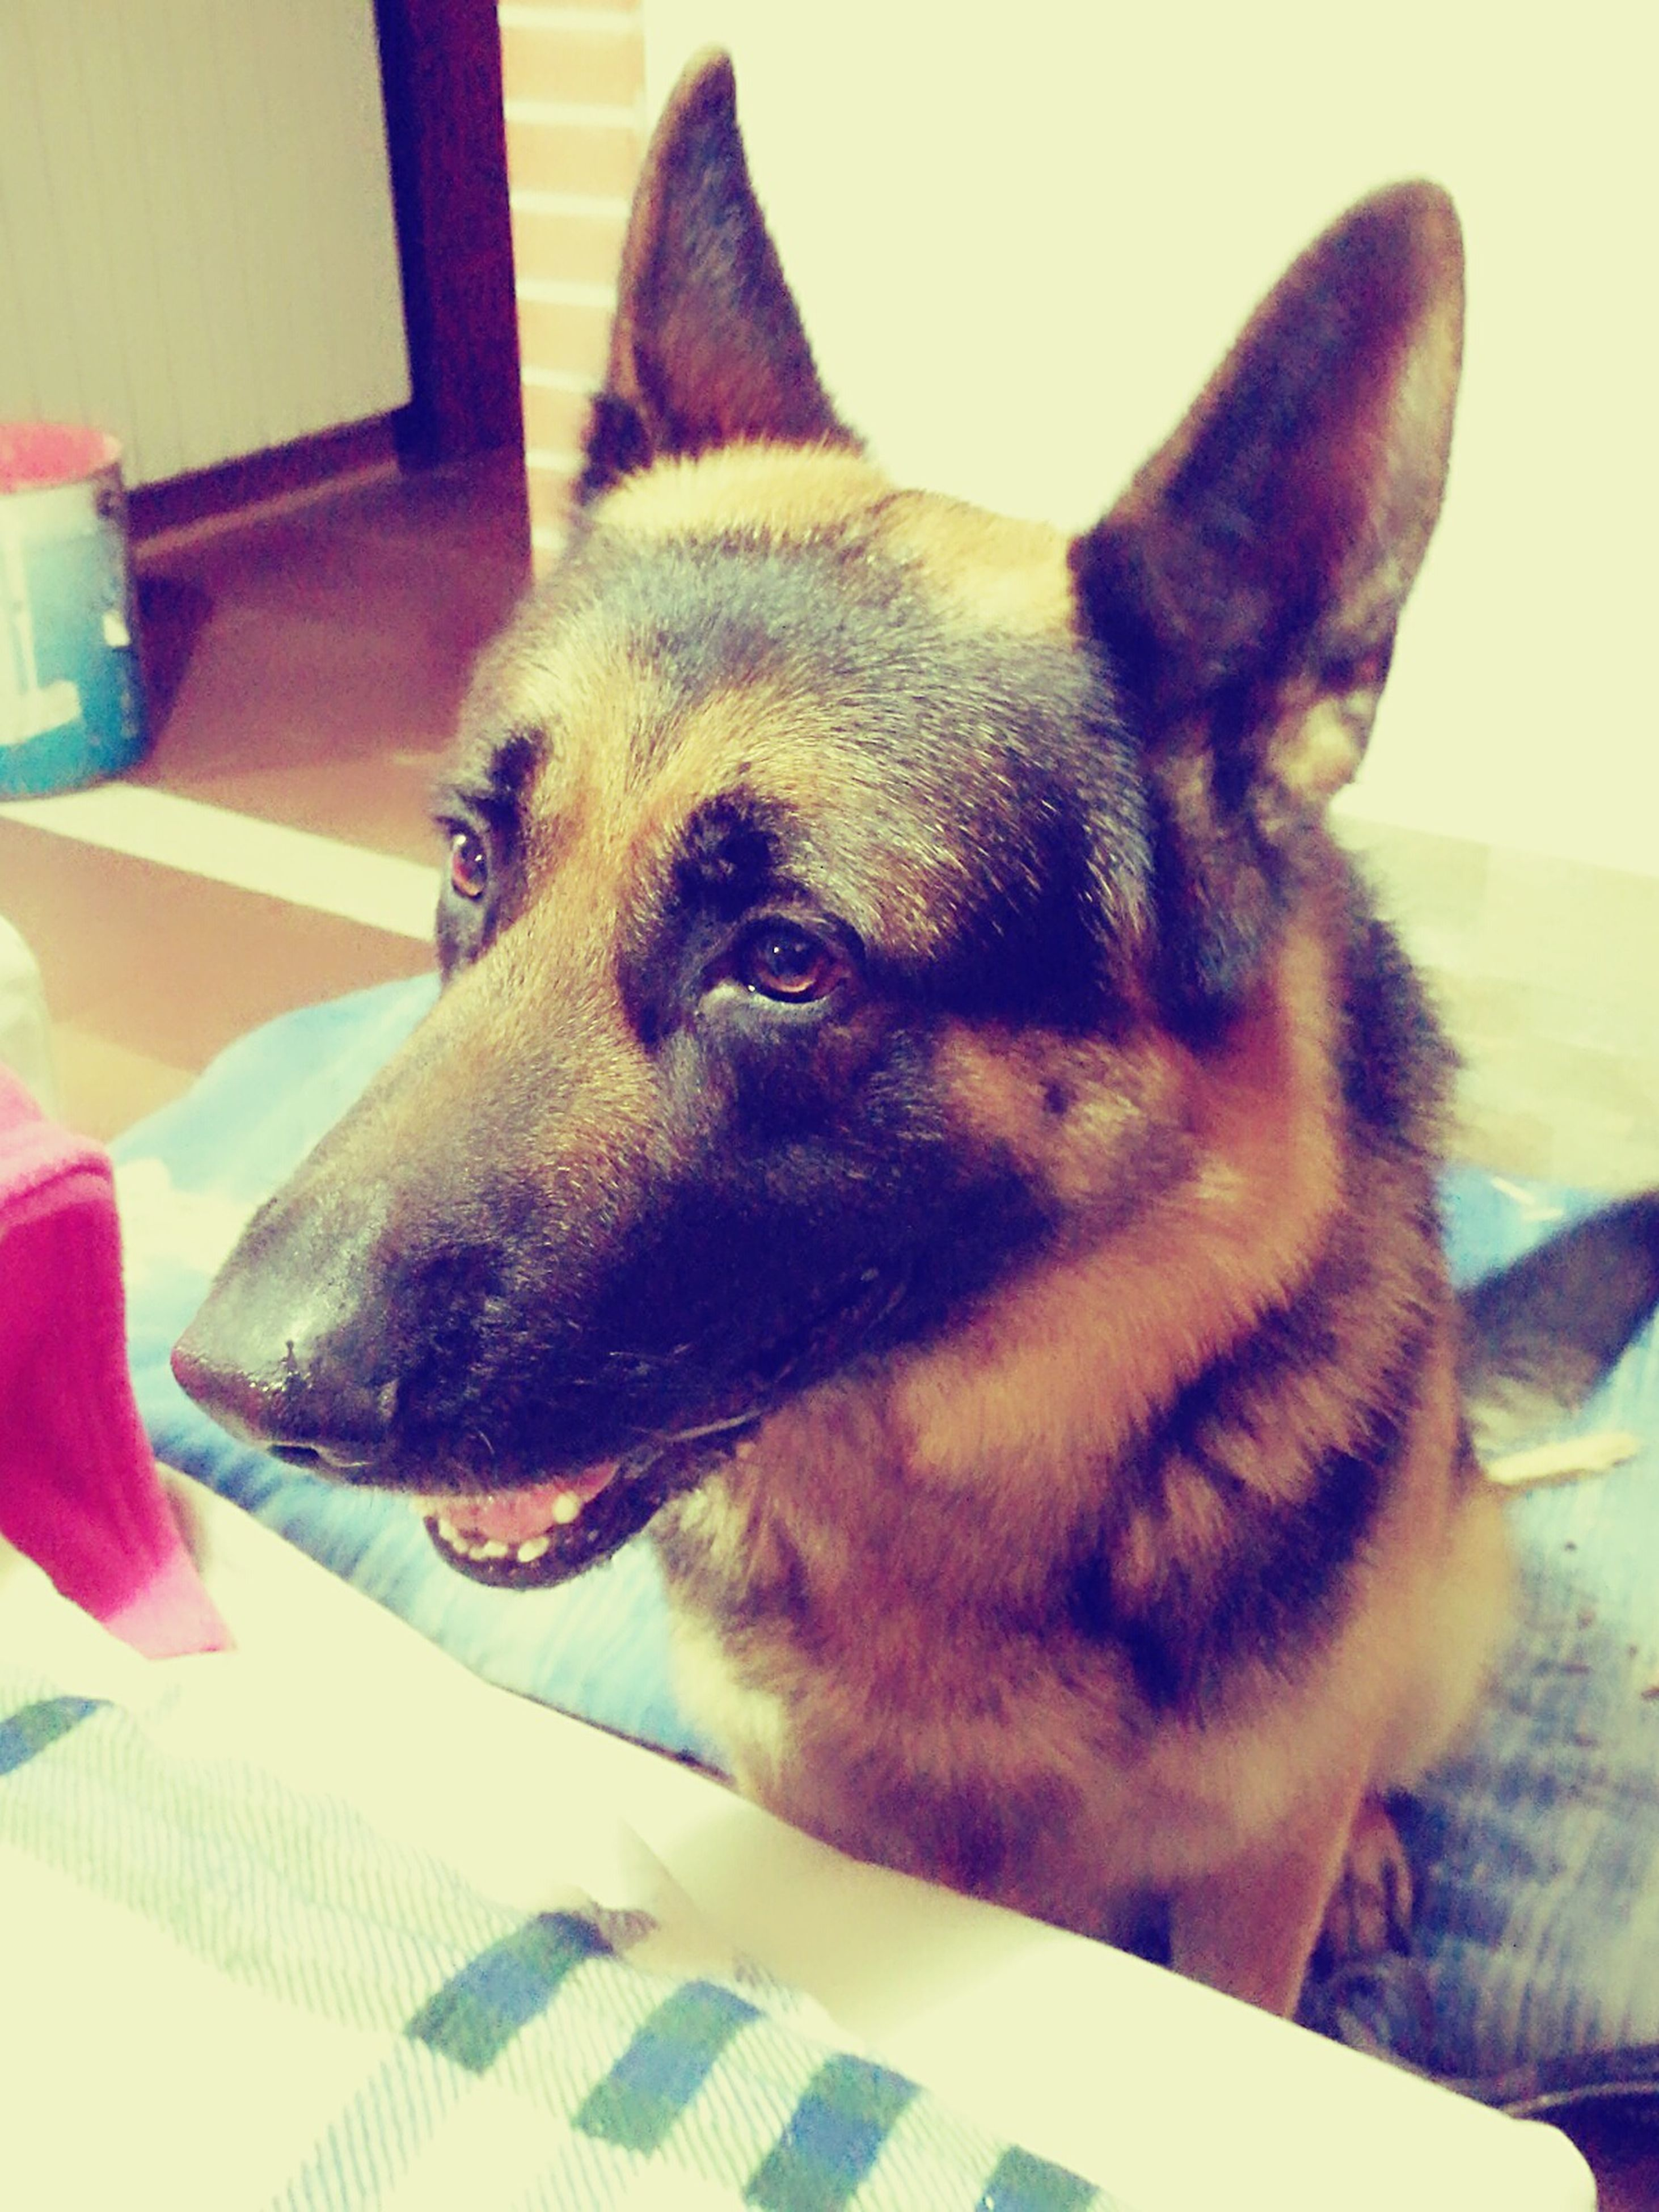 pets, domestic animals, dog, mammal, animal themes, one animal, close-up, relaxation, indoors, no people, portrait, german shepherd, day